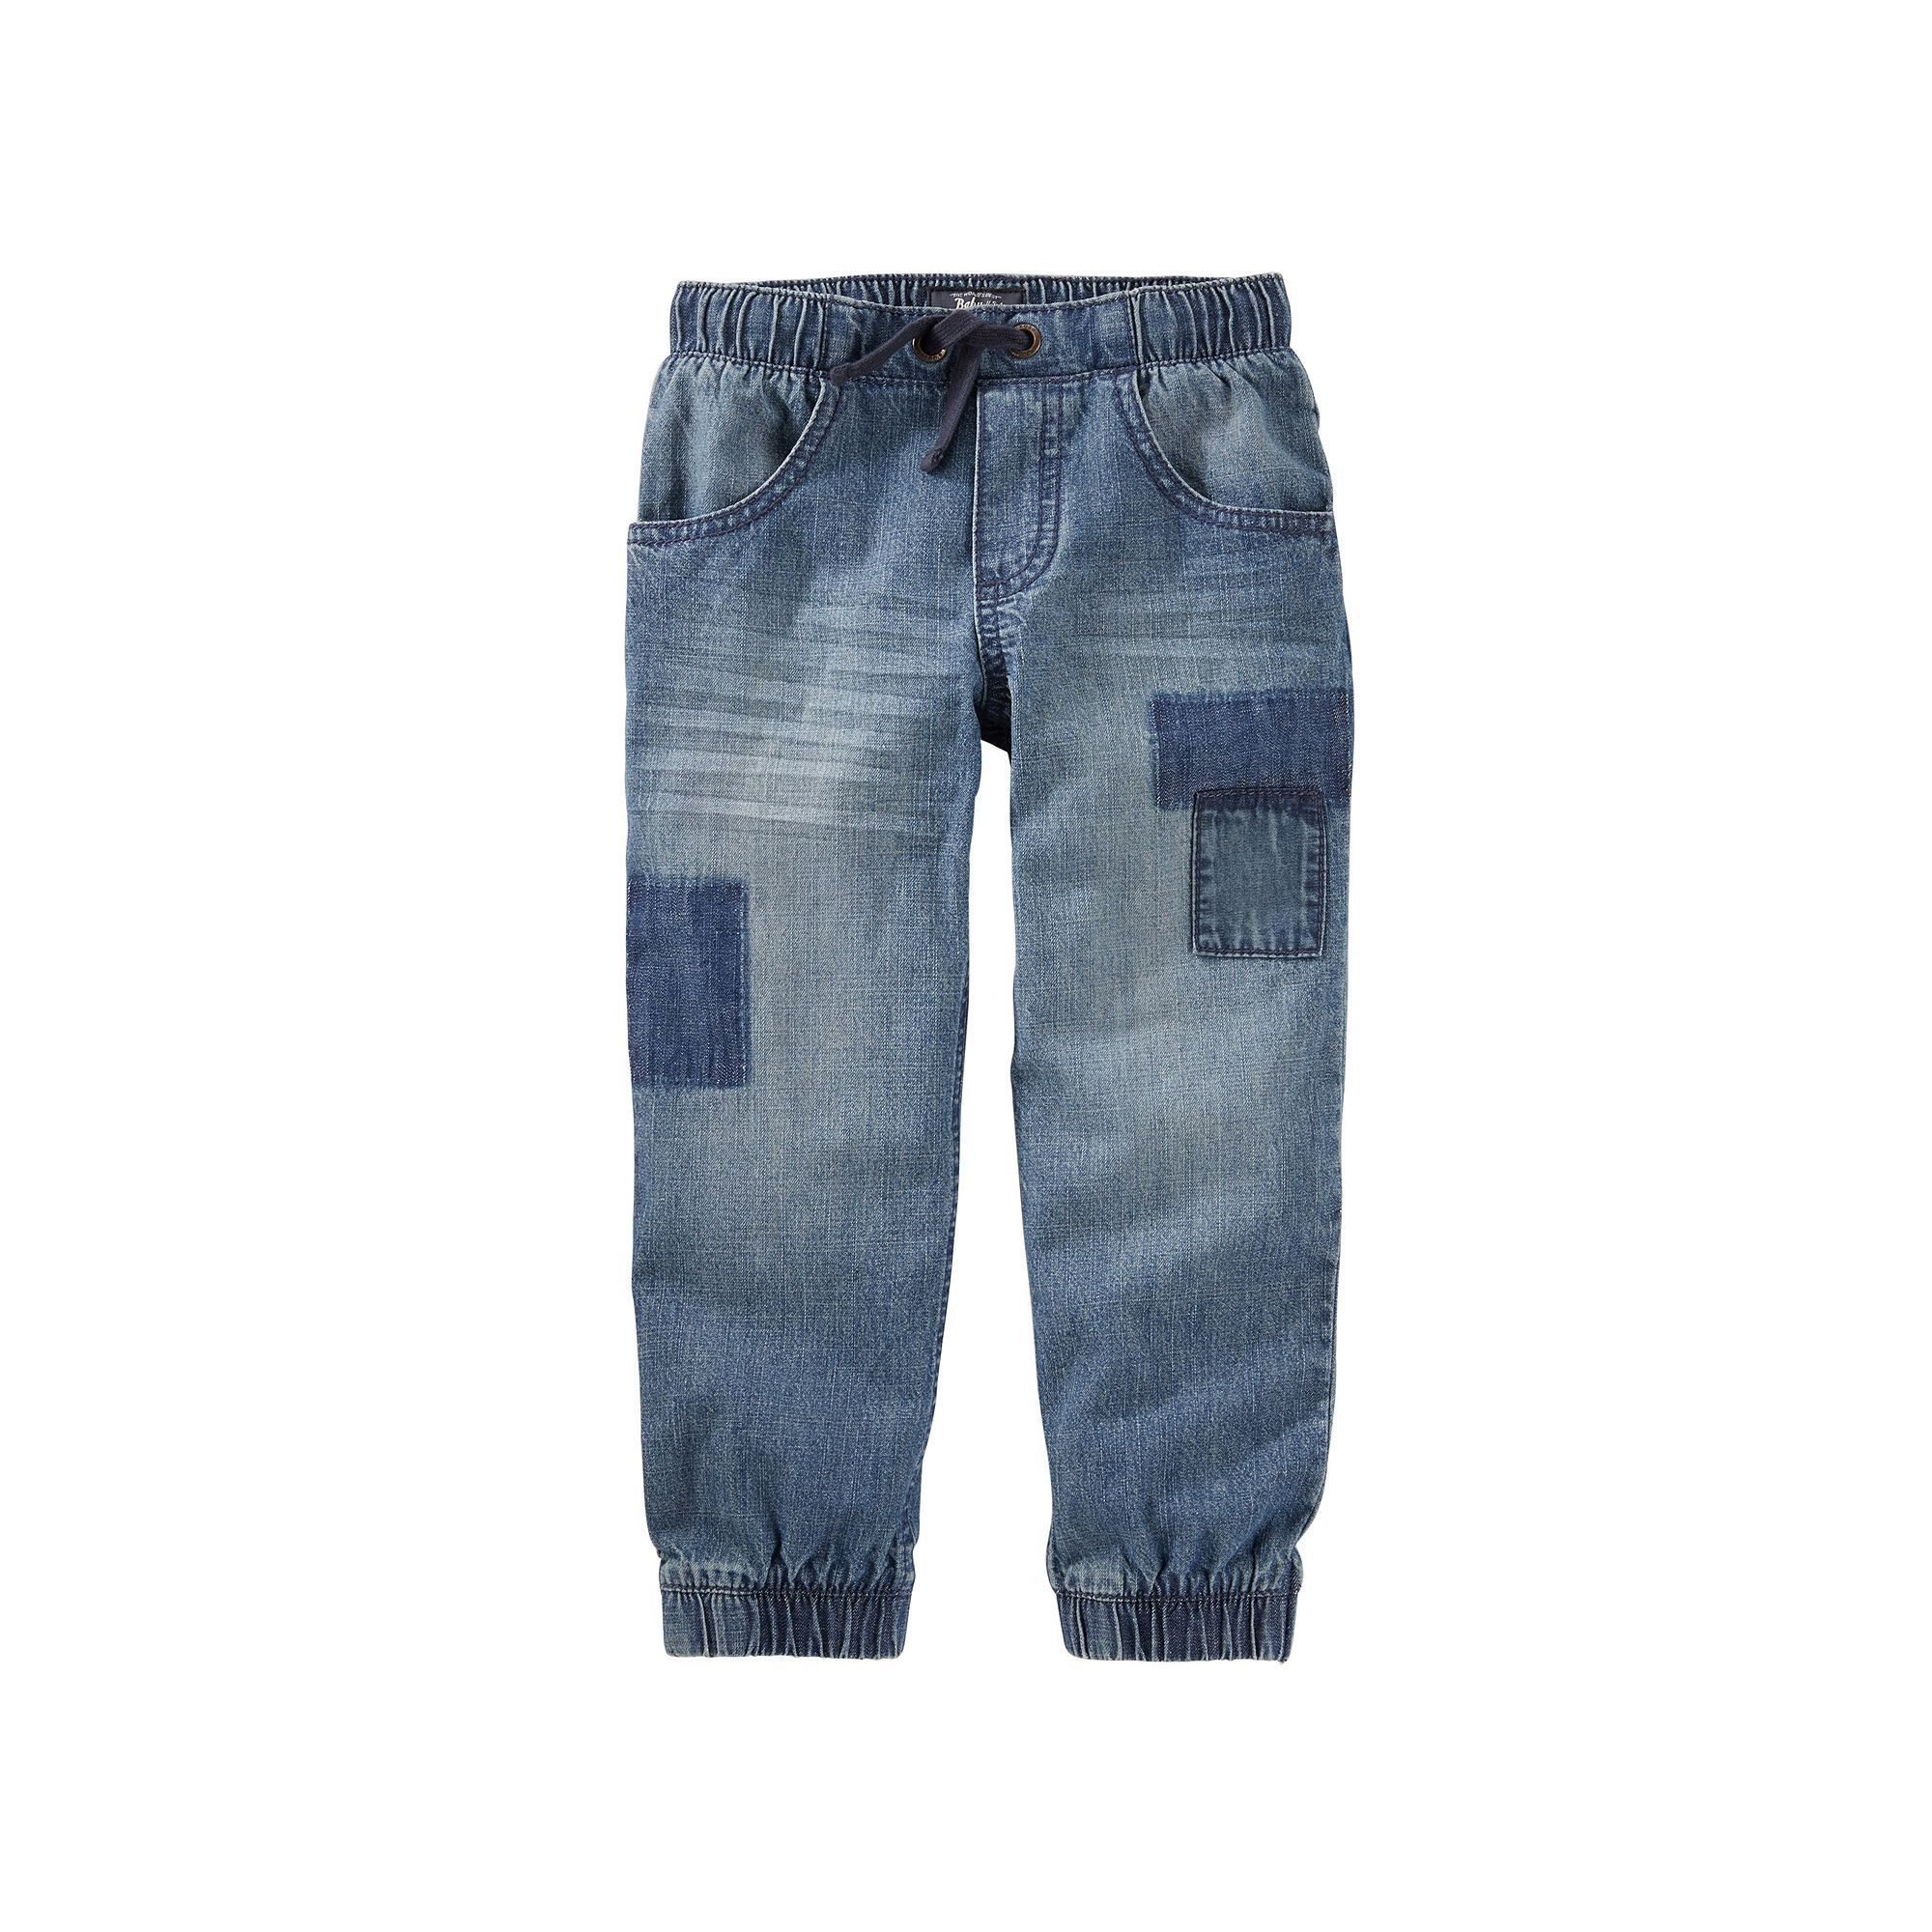 988afeea7 Toddler Boy OshKosh B'gosh® Faux-Patched Denim Jogger Pants, Size: 3T,  Blue Other